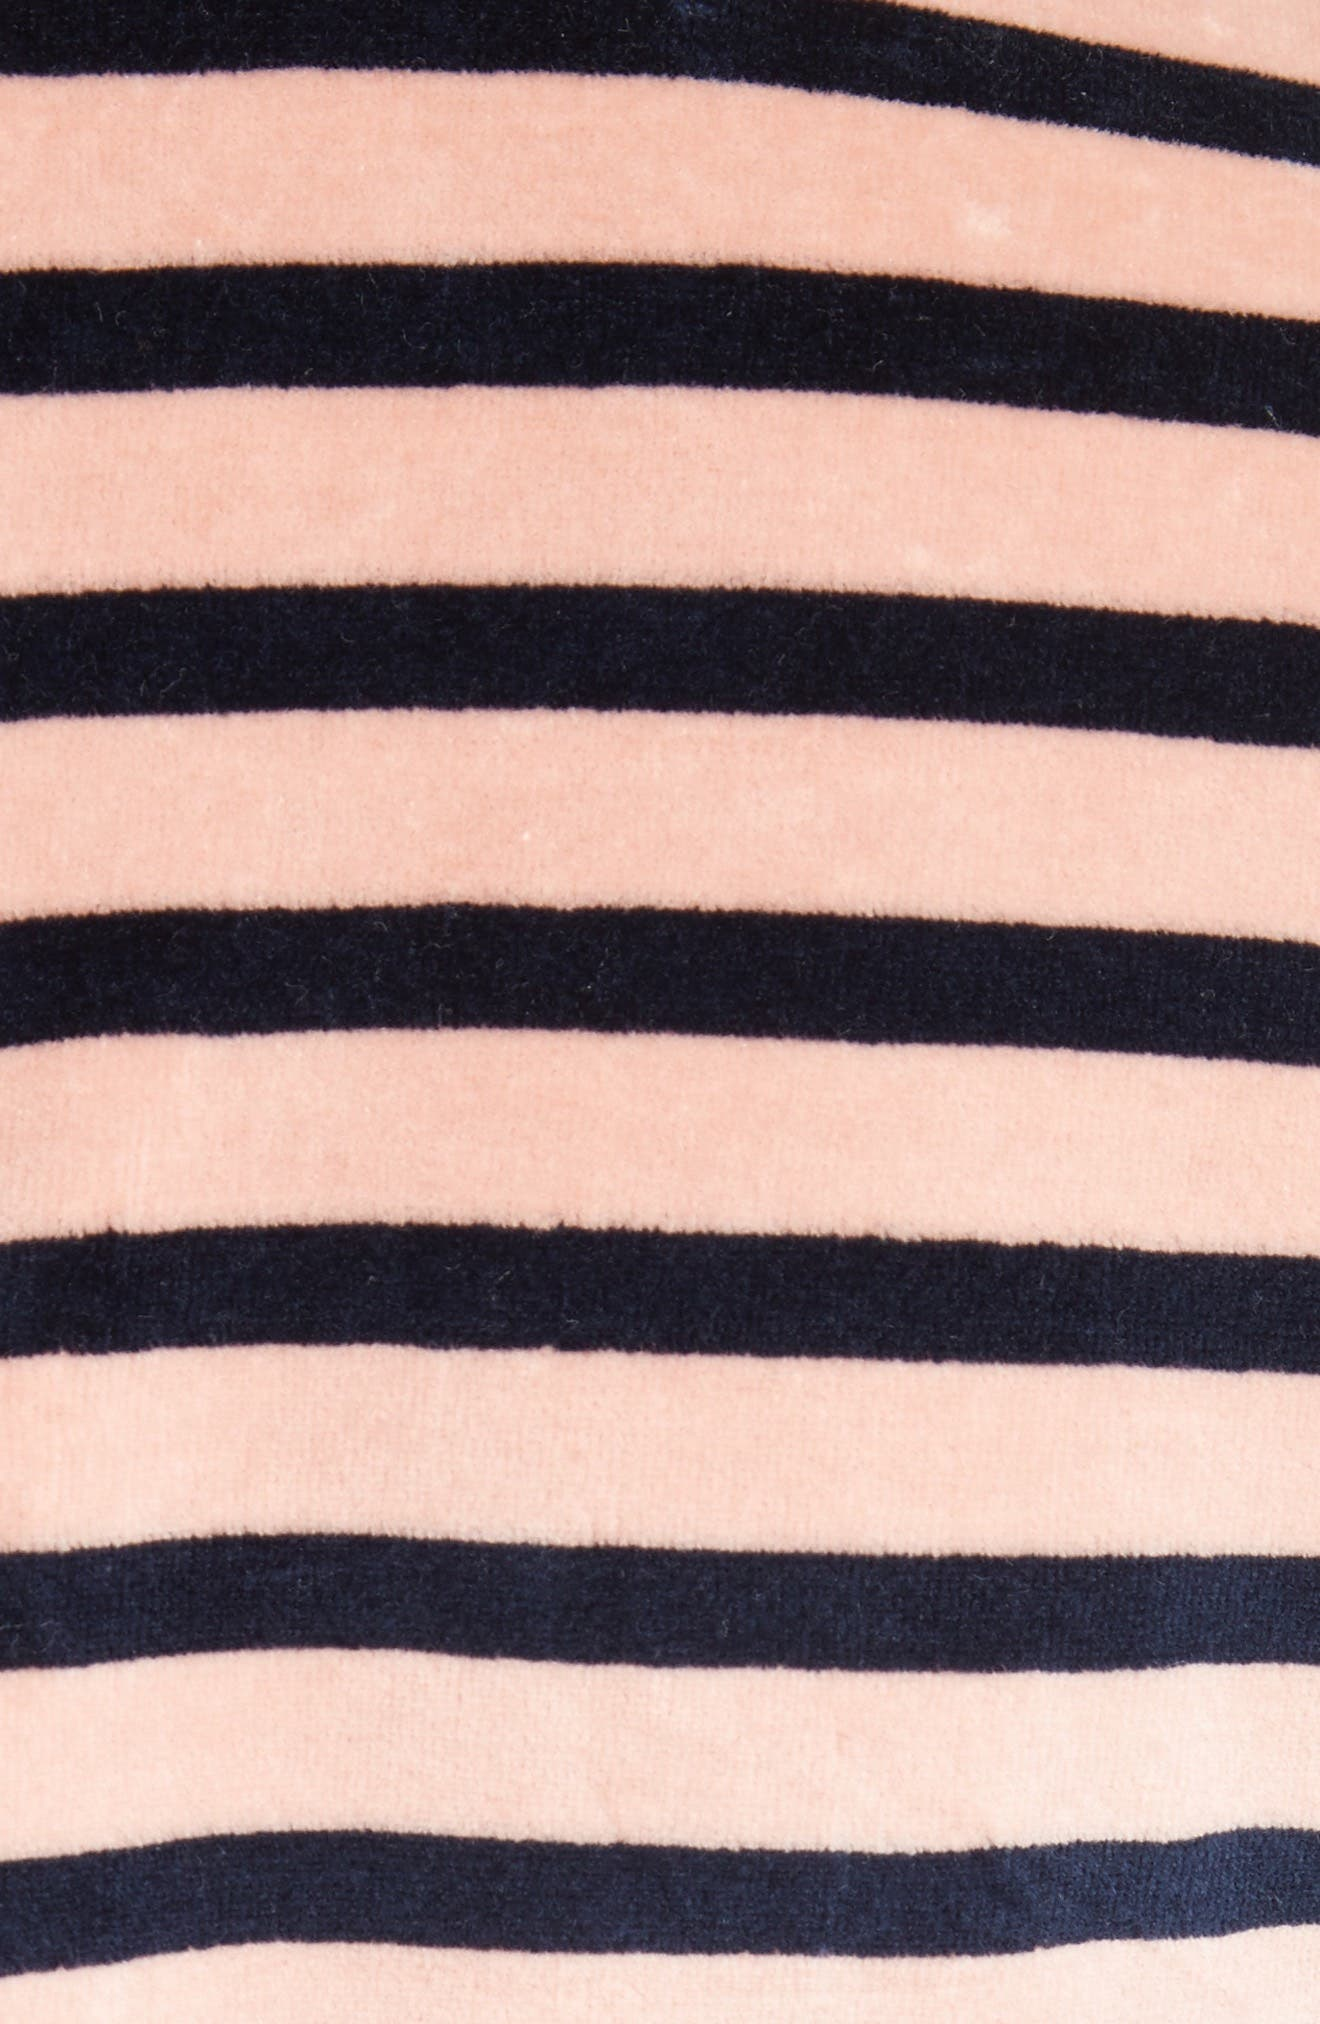 T by Alexander Wang Stripe Velvet Dress,                             Alternate thumbnail 5, color,                             401